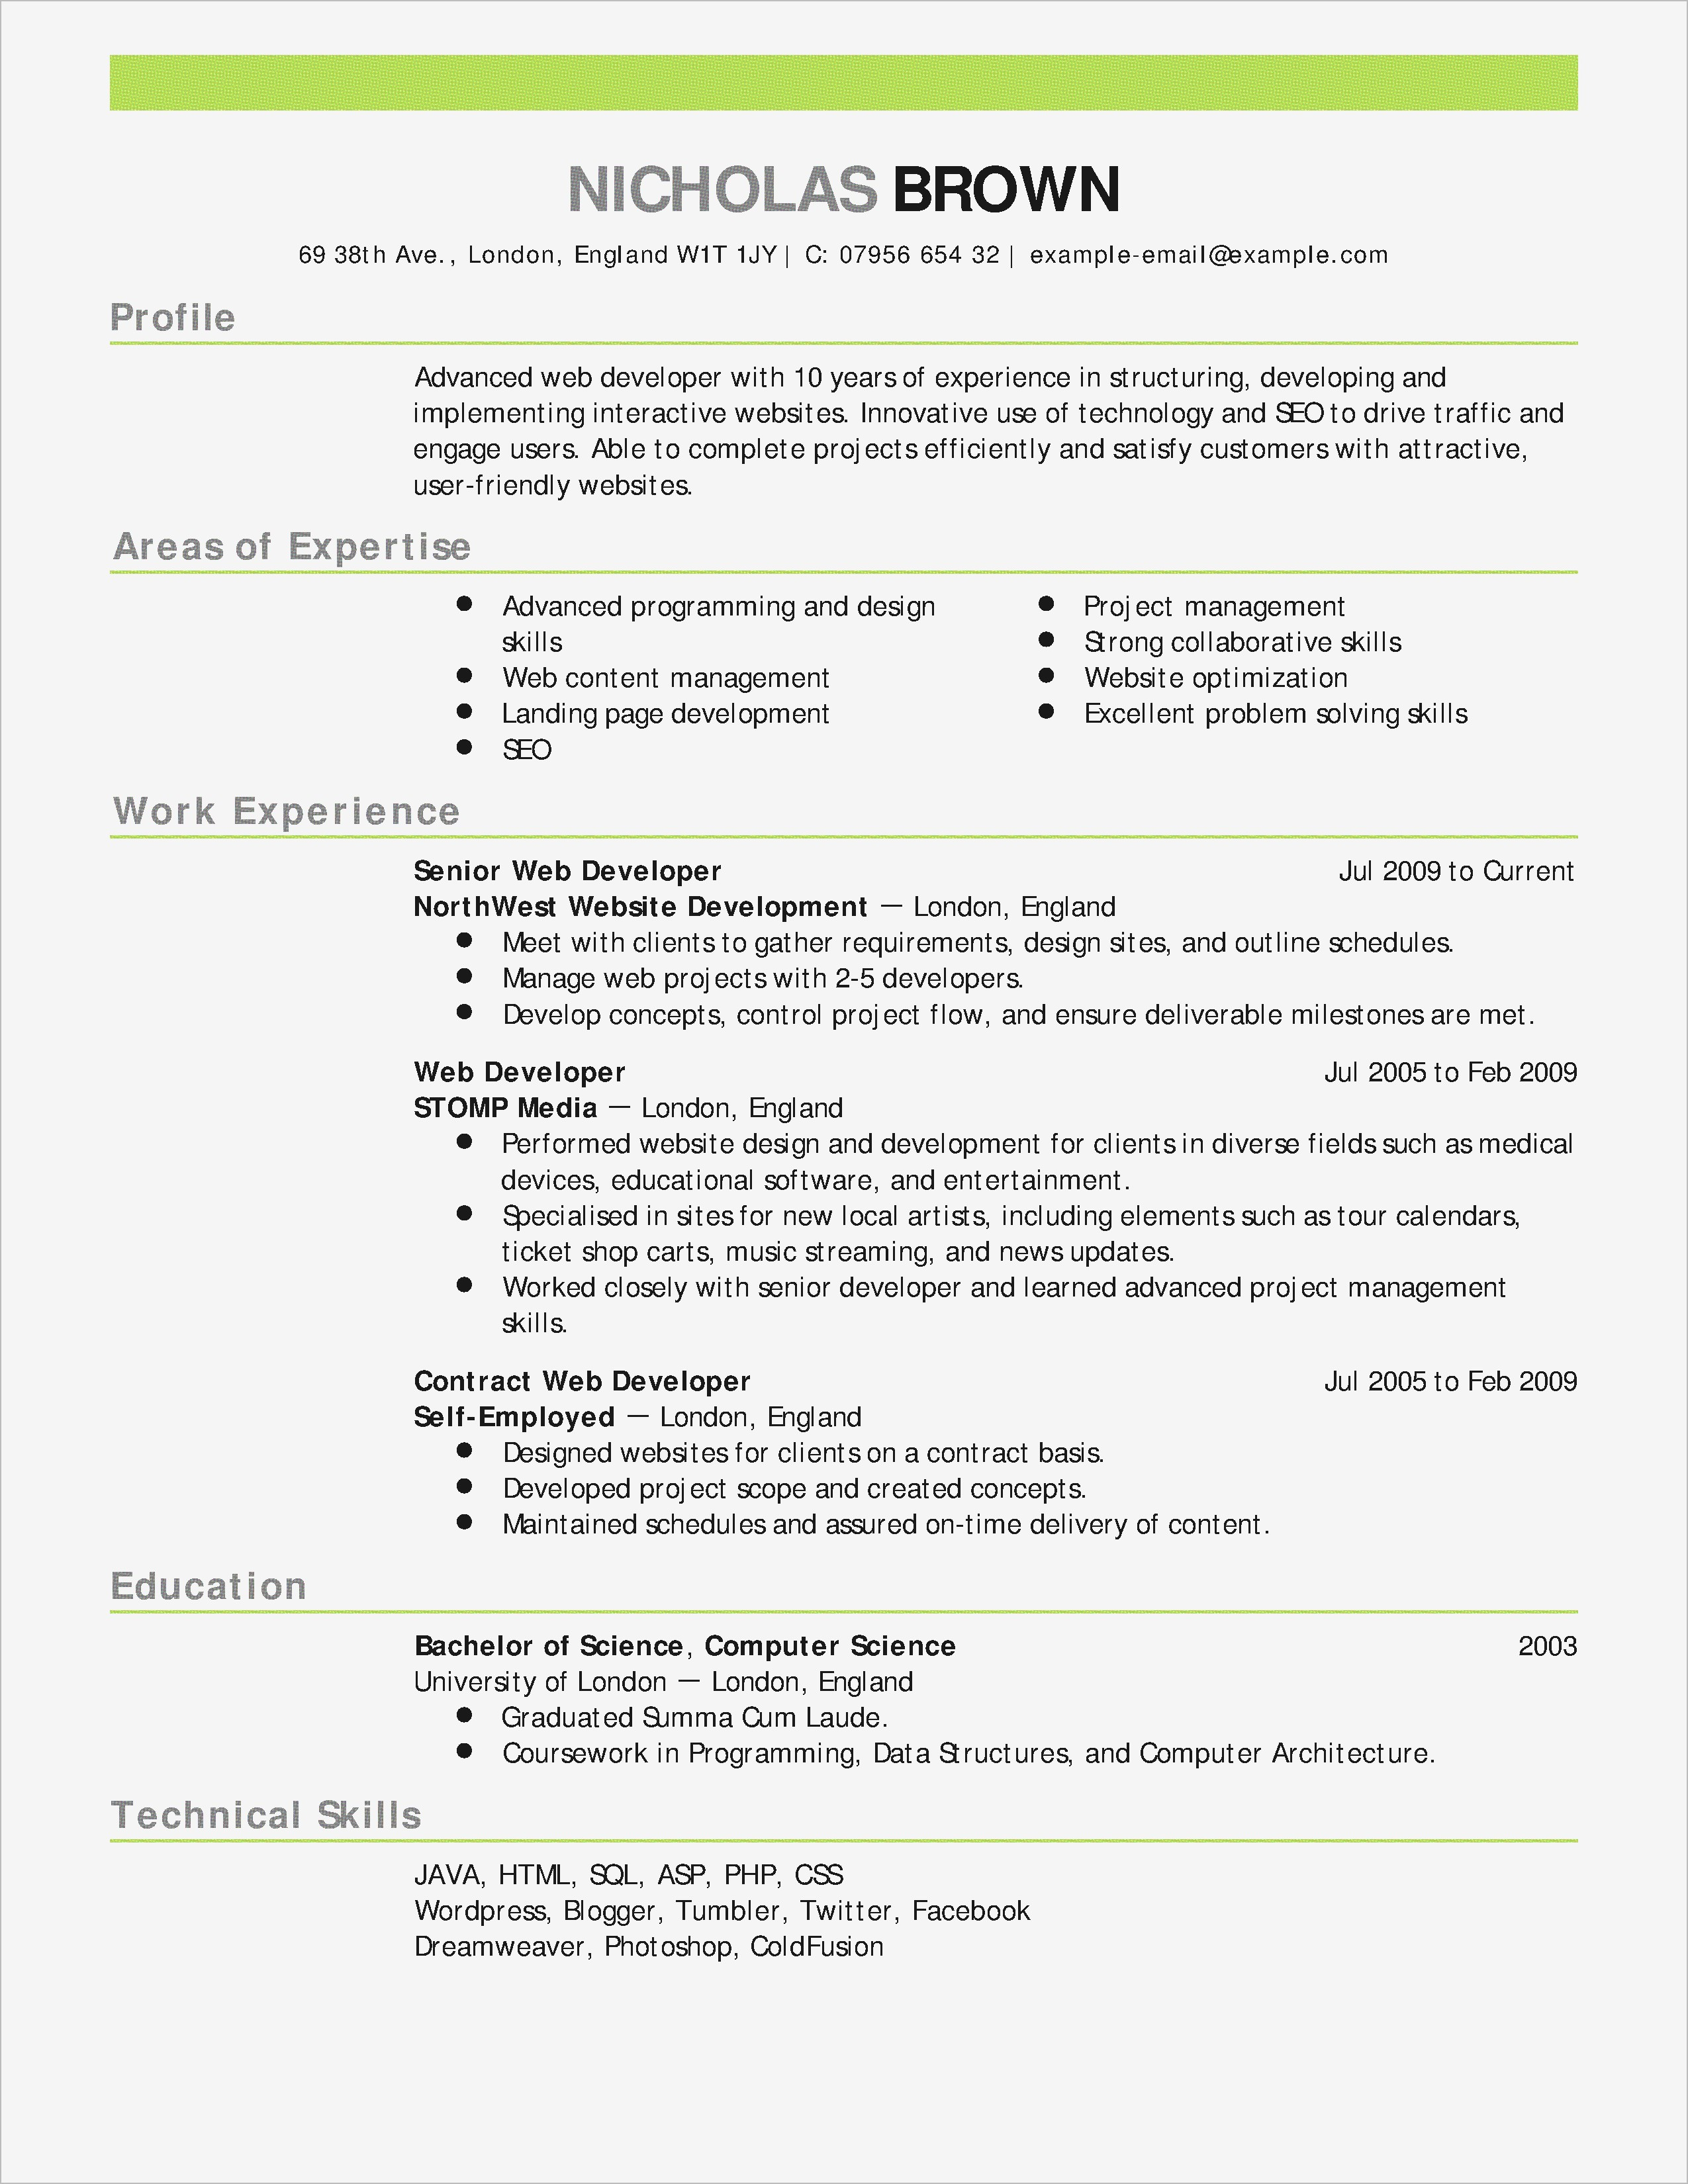 Gift Letter Template Uk - Example A Cover Letter for A Job Resume Ideas